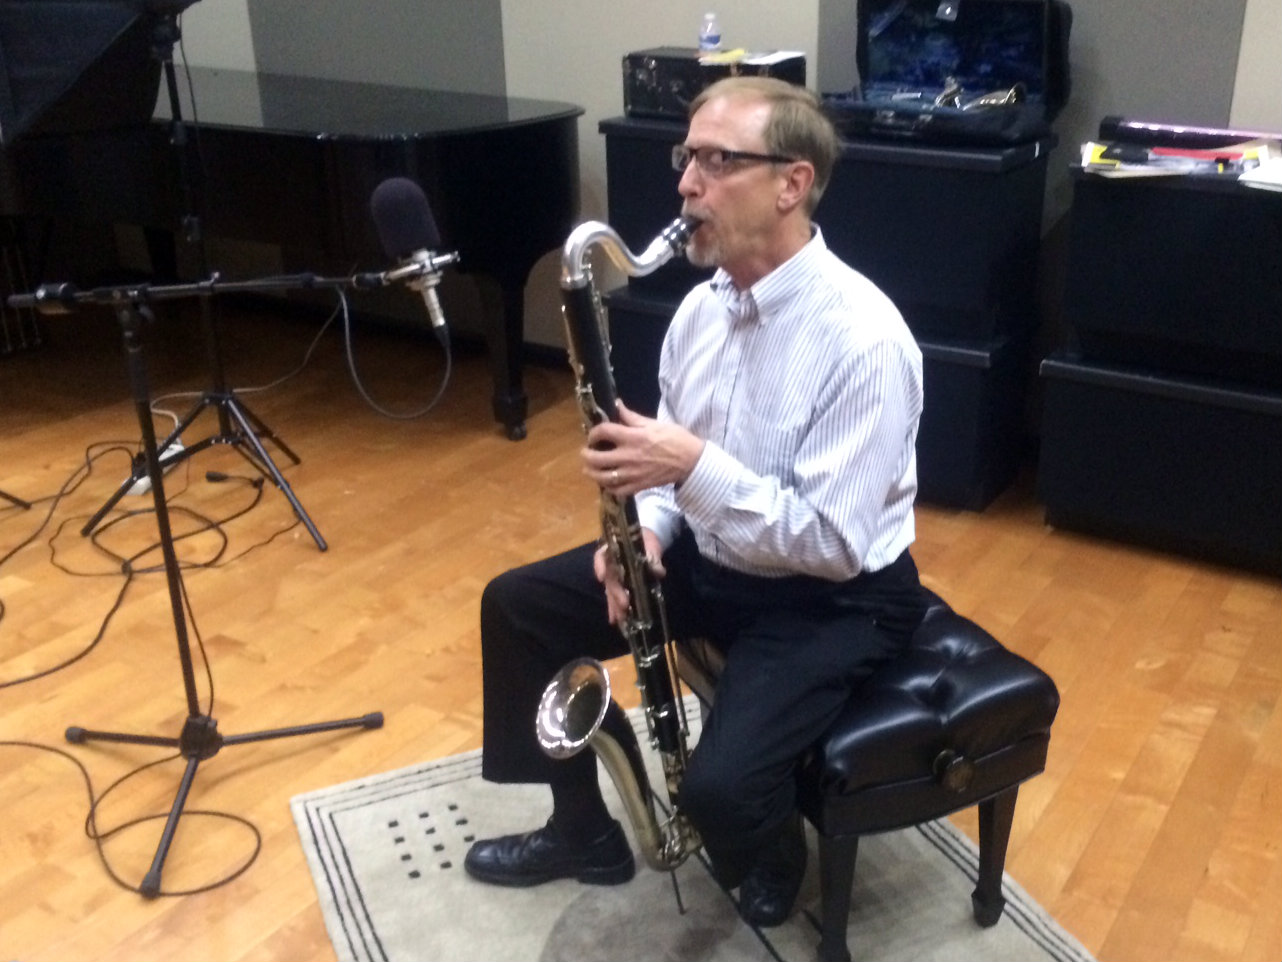 Photo: Andy Stevens and bass clarinet in CPR Performance Studio 1